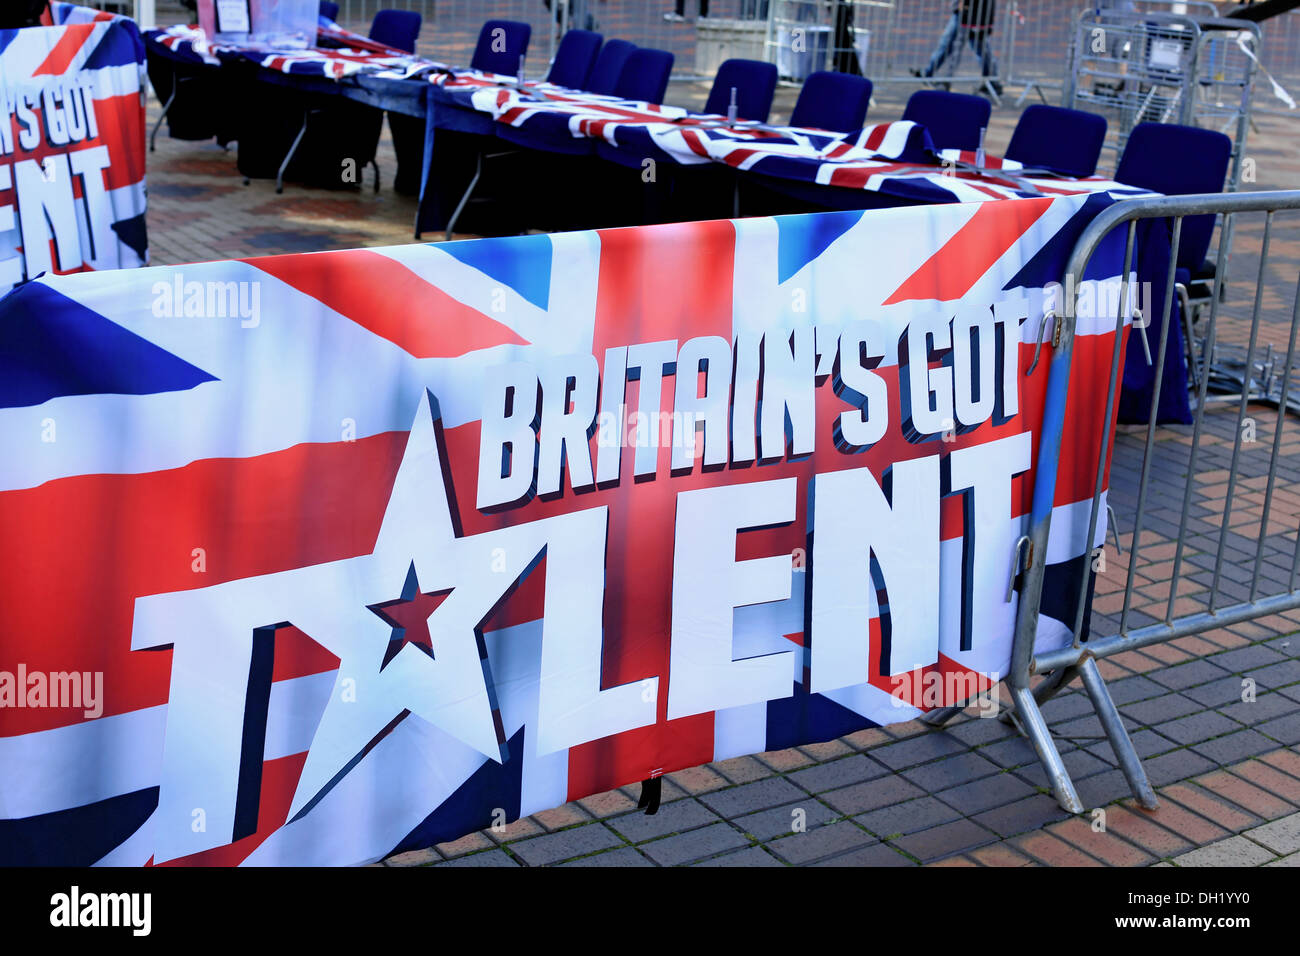 Britainu0027s Got Talent banner and judges chairs ready for talent artists to perform at auditions for the television programme & Britainu0027s Got Talent banner and judges chairs ready for talent Stock ...